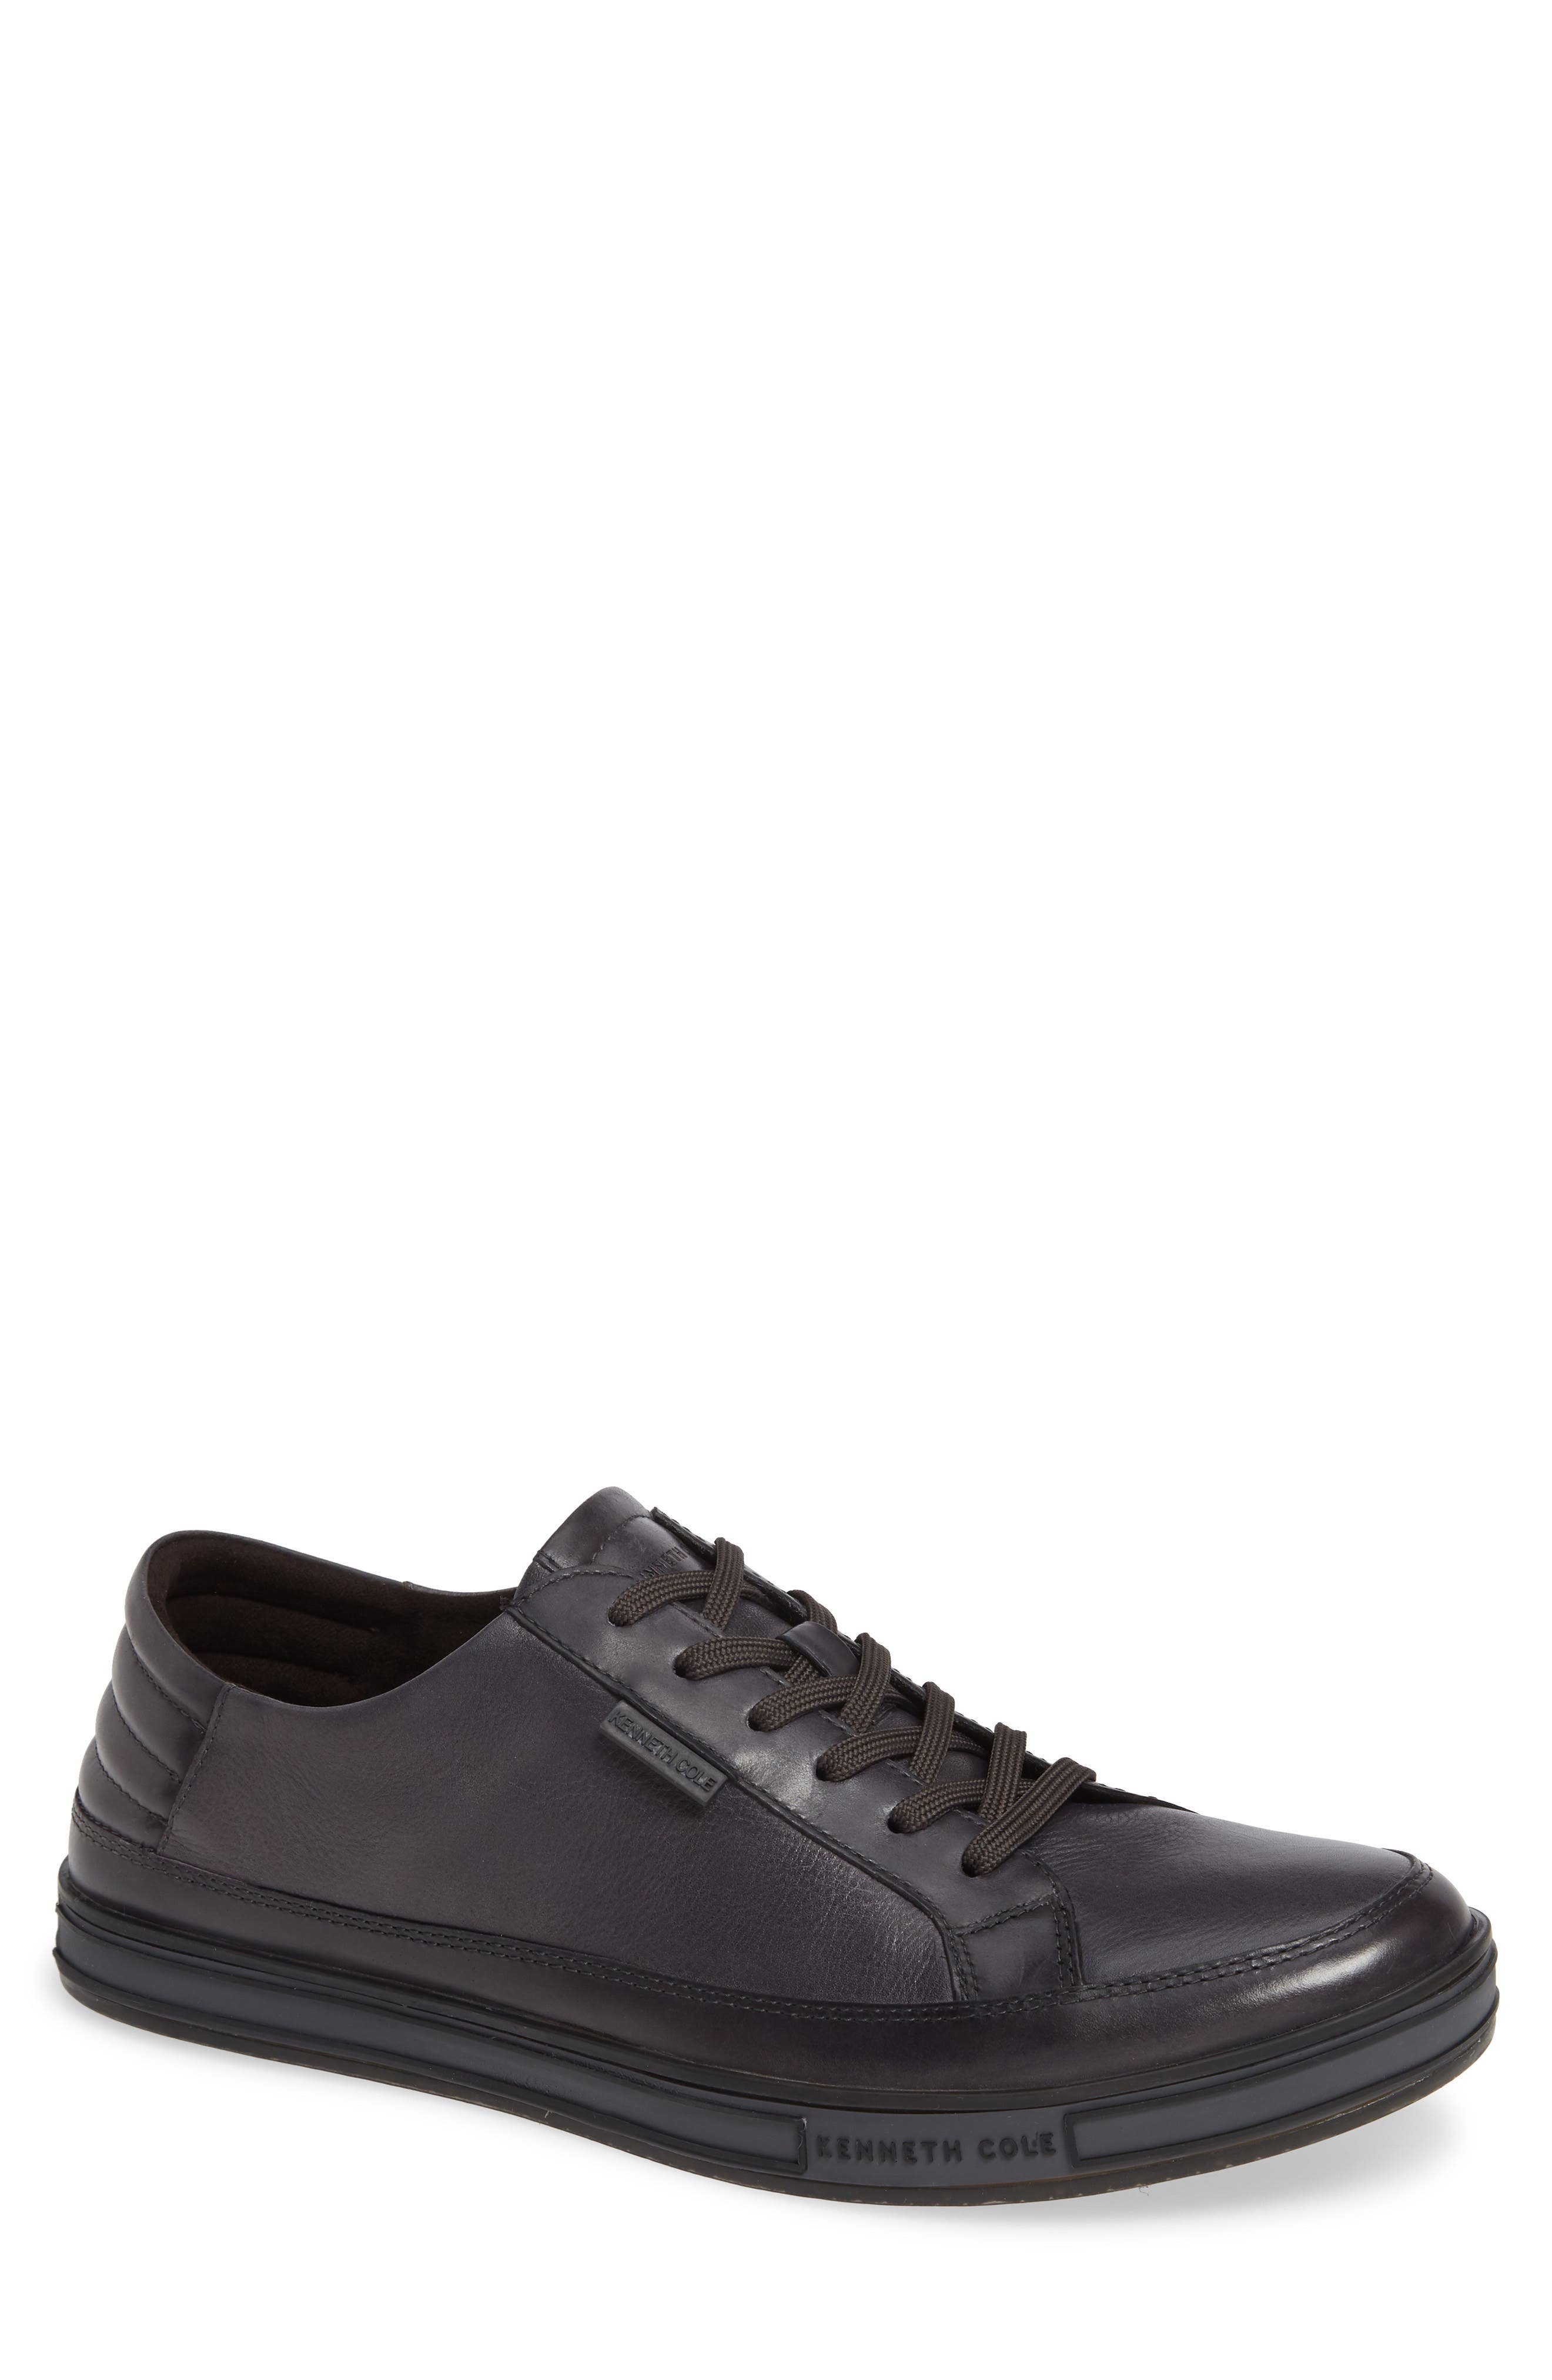 KENNETH COLE NEW YORK, Brand Stand Low Top Sneaker, Main thumbnail 1, color, GREY TUMBLED LEATHER/ LEATHER